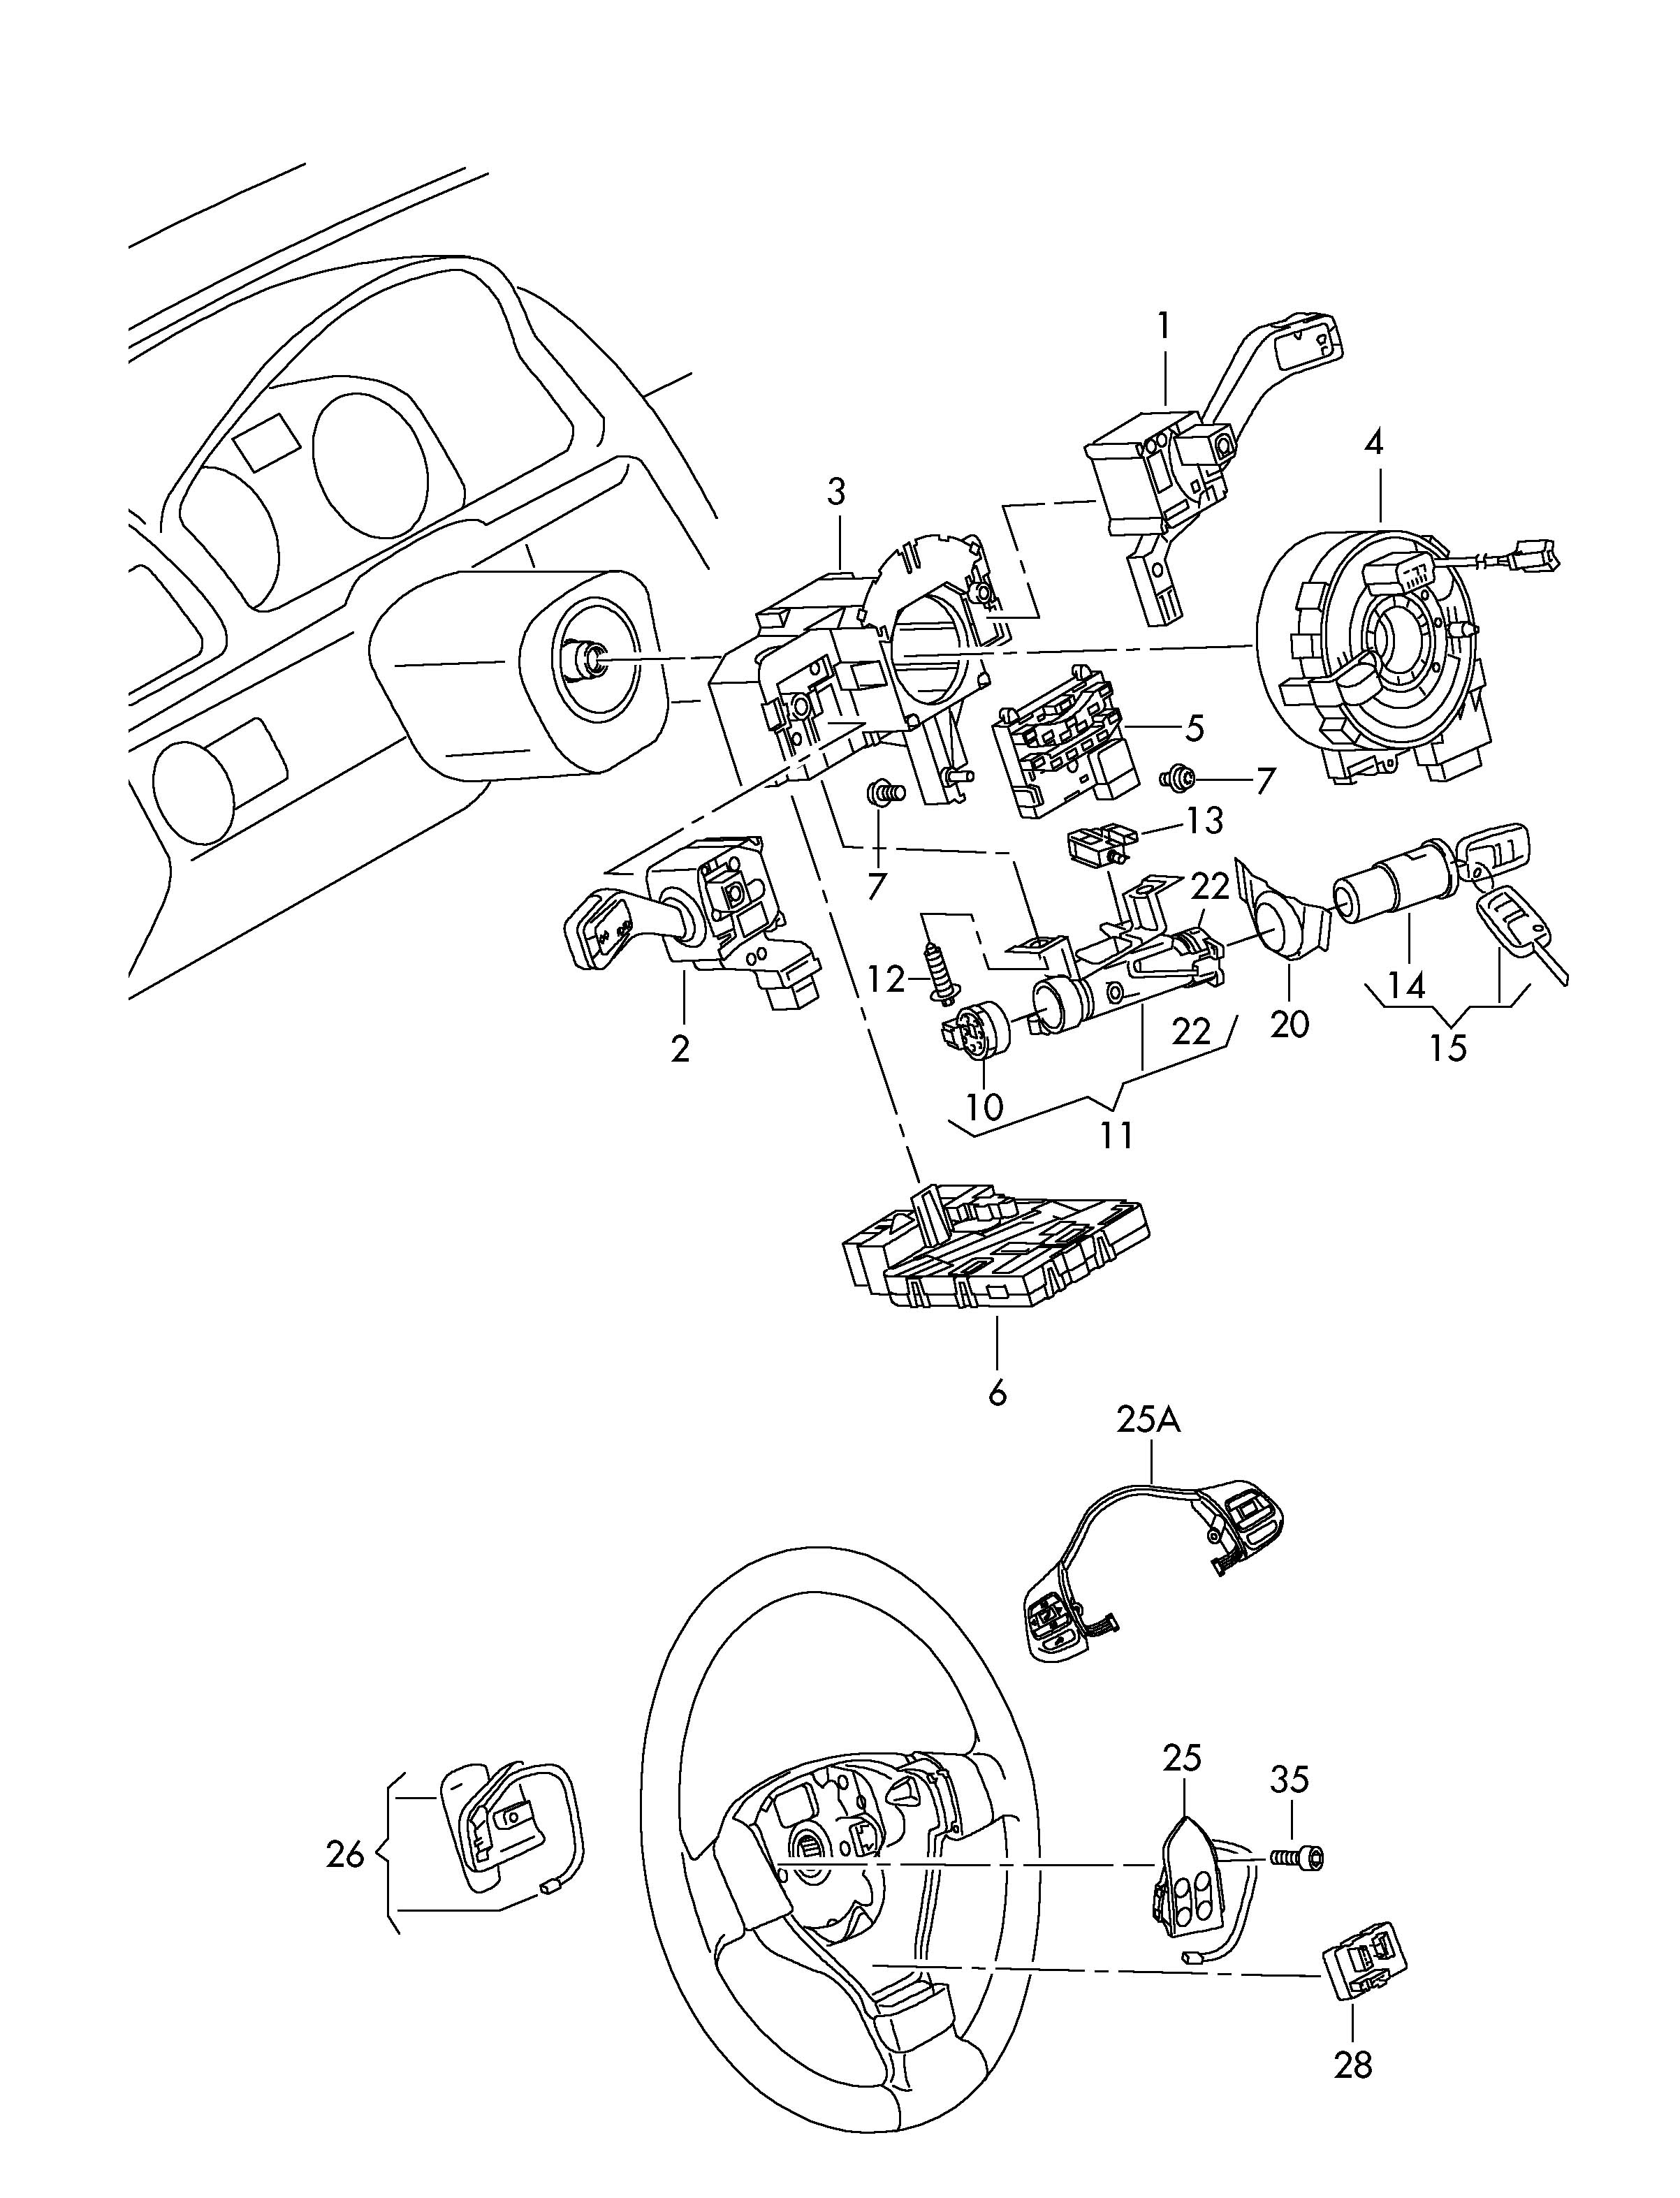 volkswagen rabbit ignition switch wiring diagram